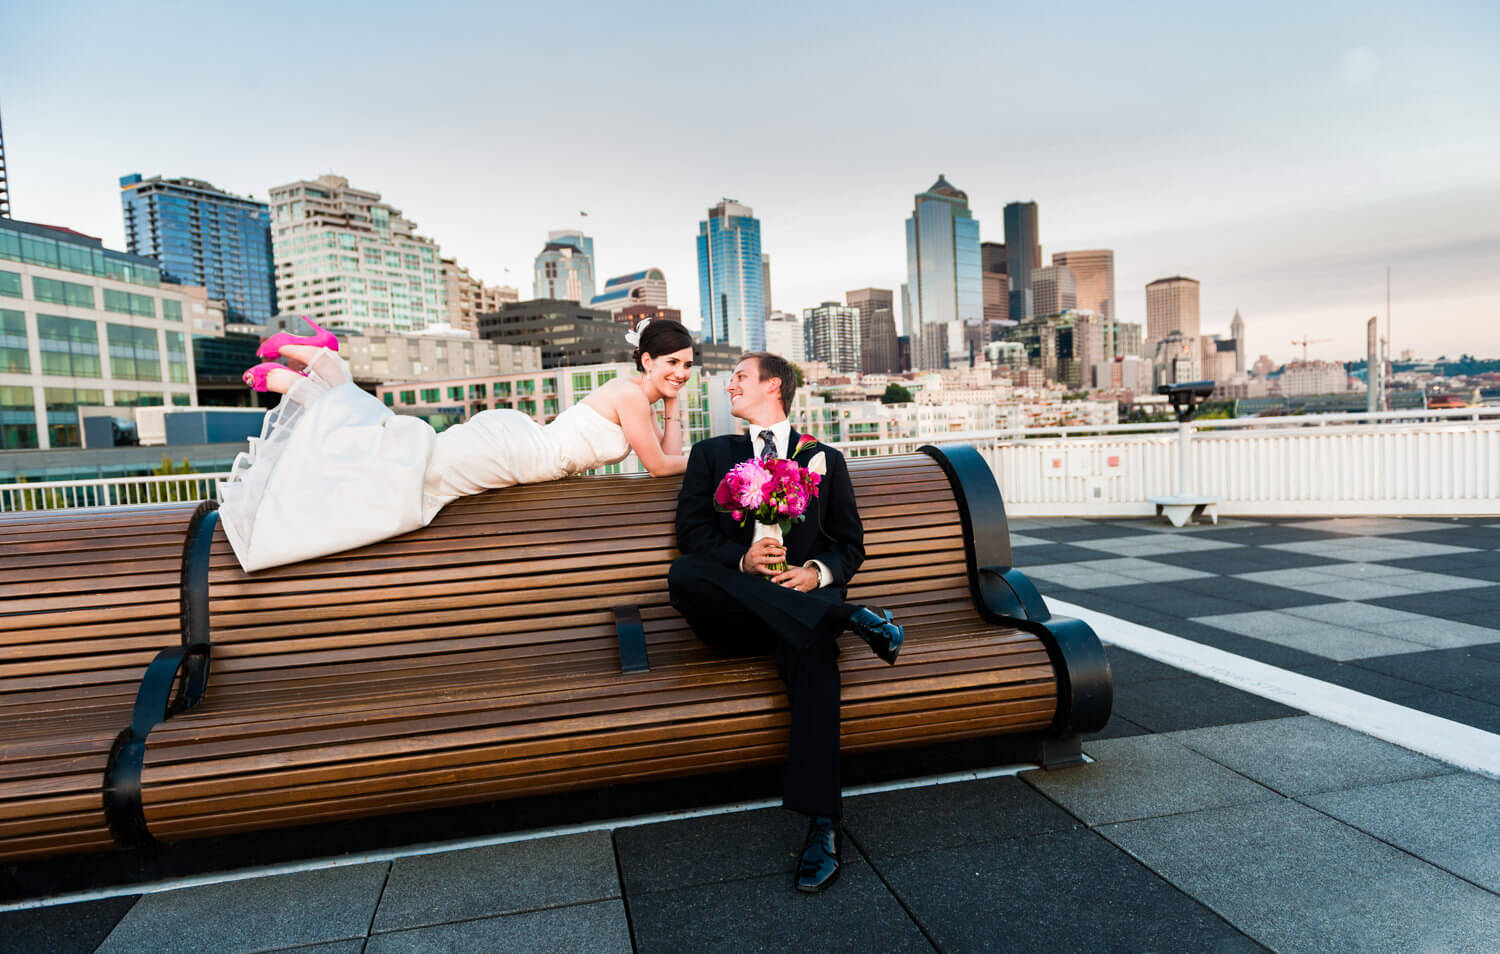 bell-harbor-rooftop-bride-groom.jpg